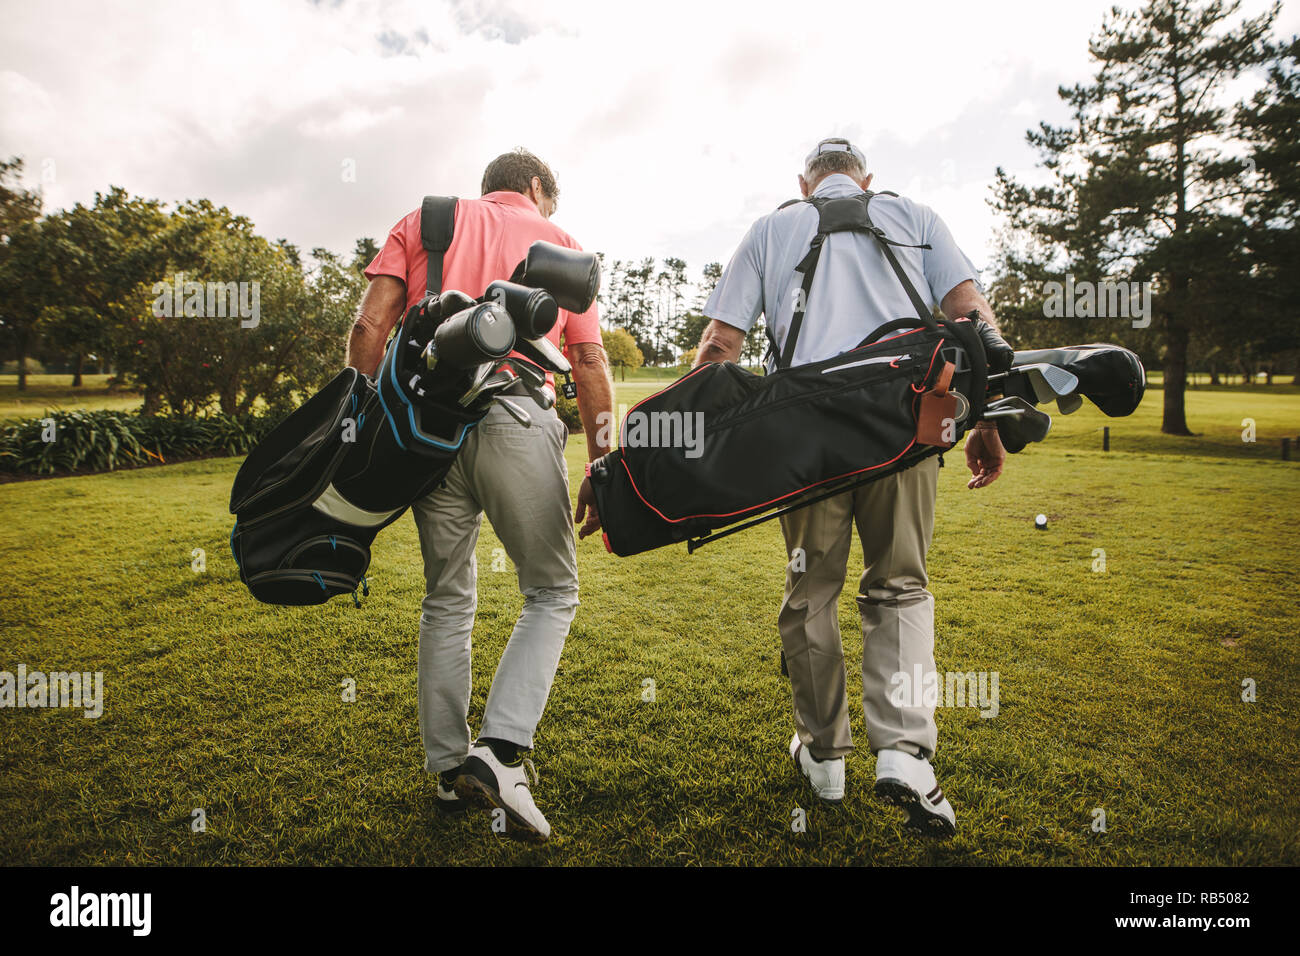 Rear view of two senior golf players walking together in the golf course with their golf bags. Senior golfers walking out of the course after the game - Stock Image